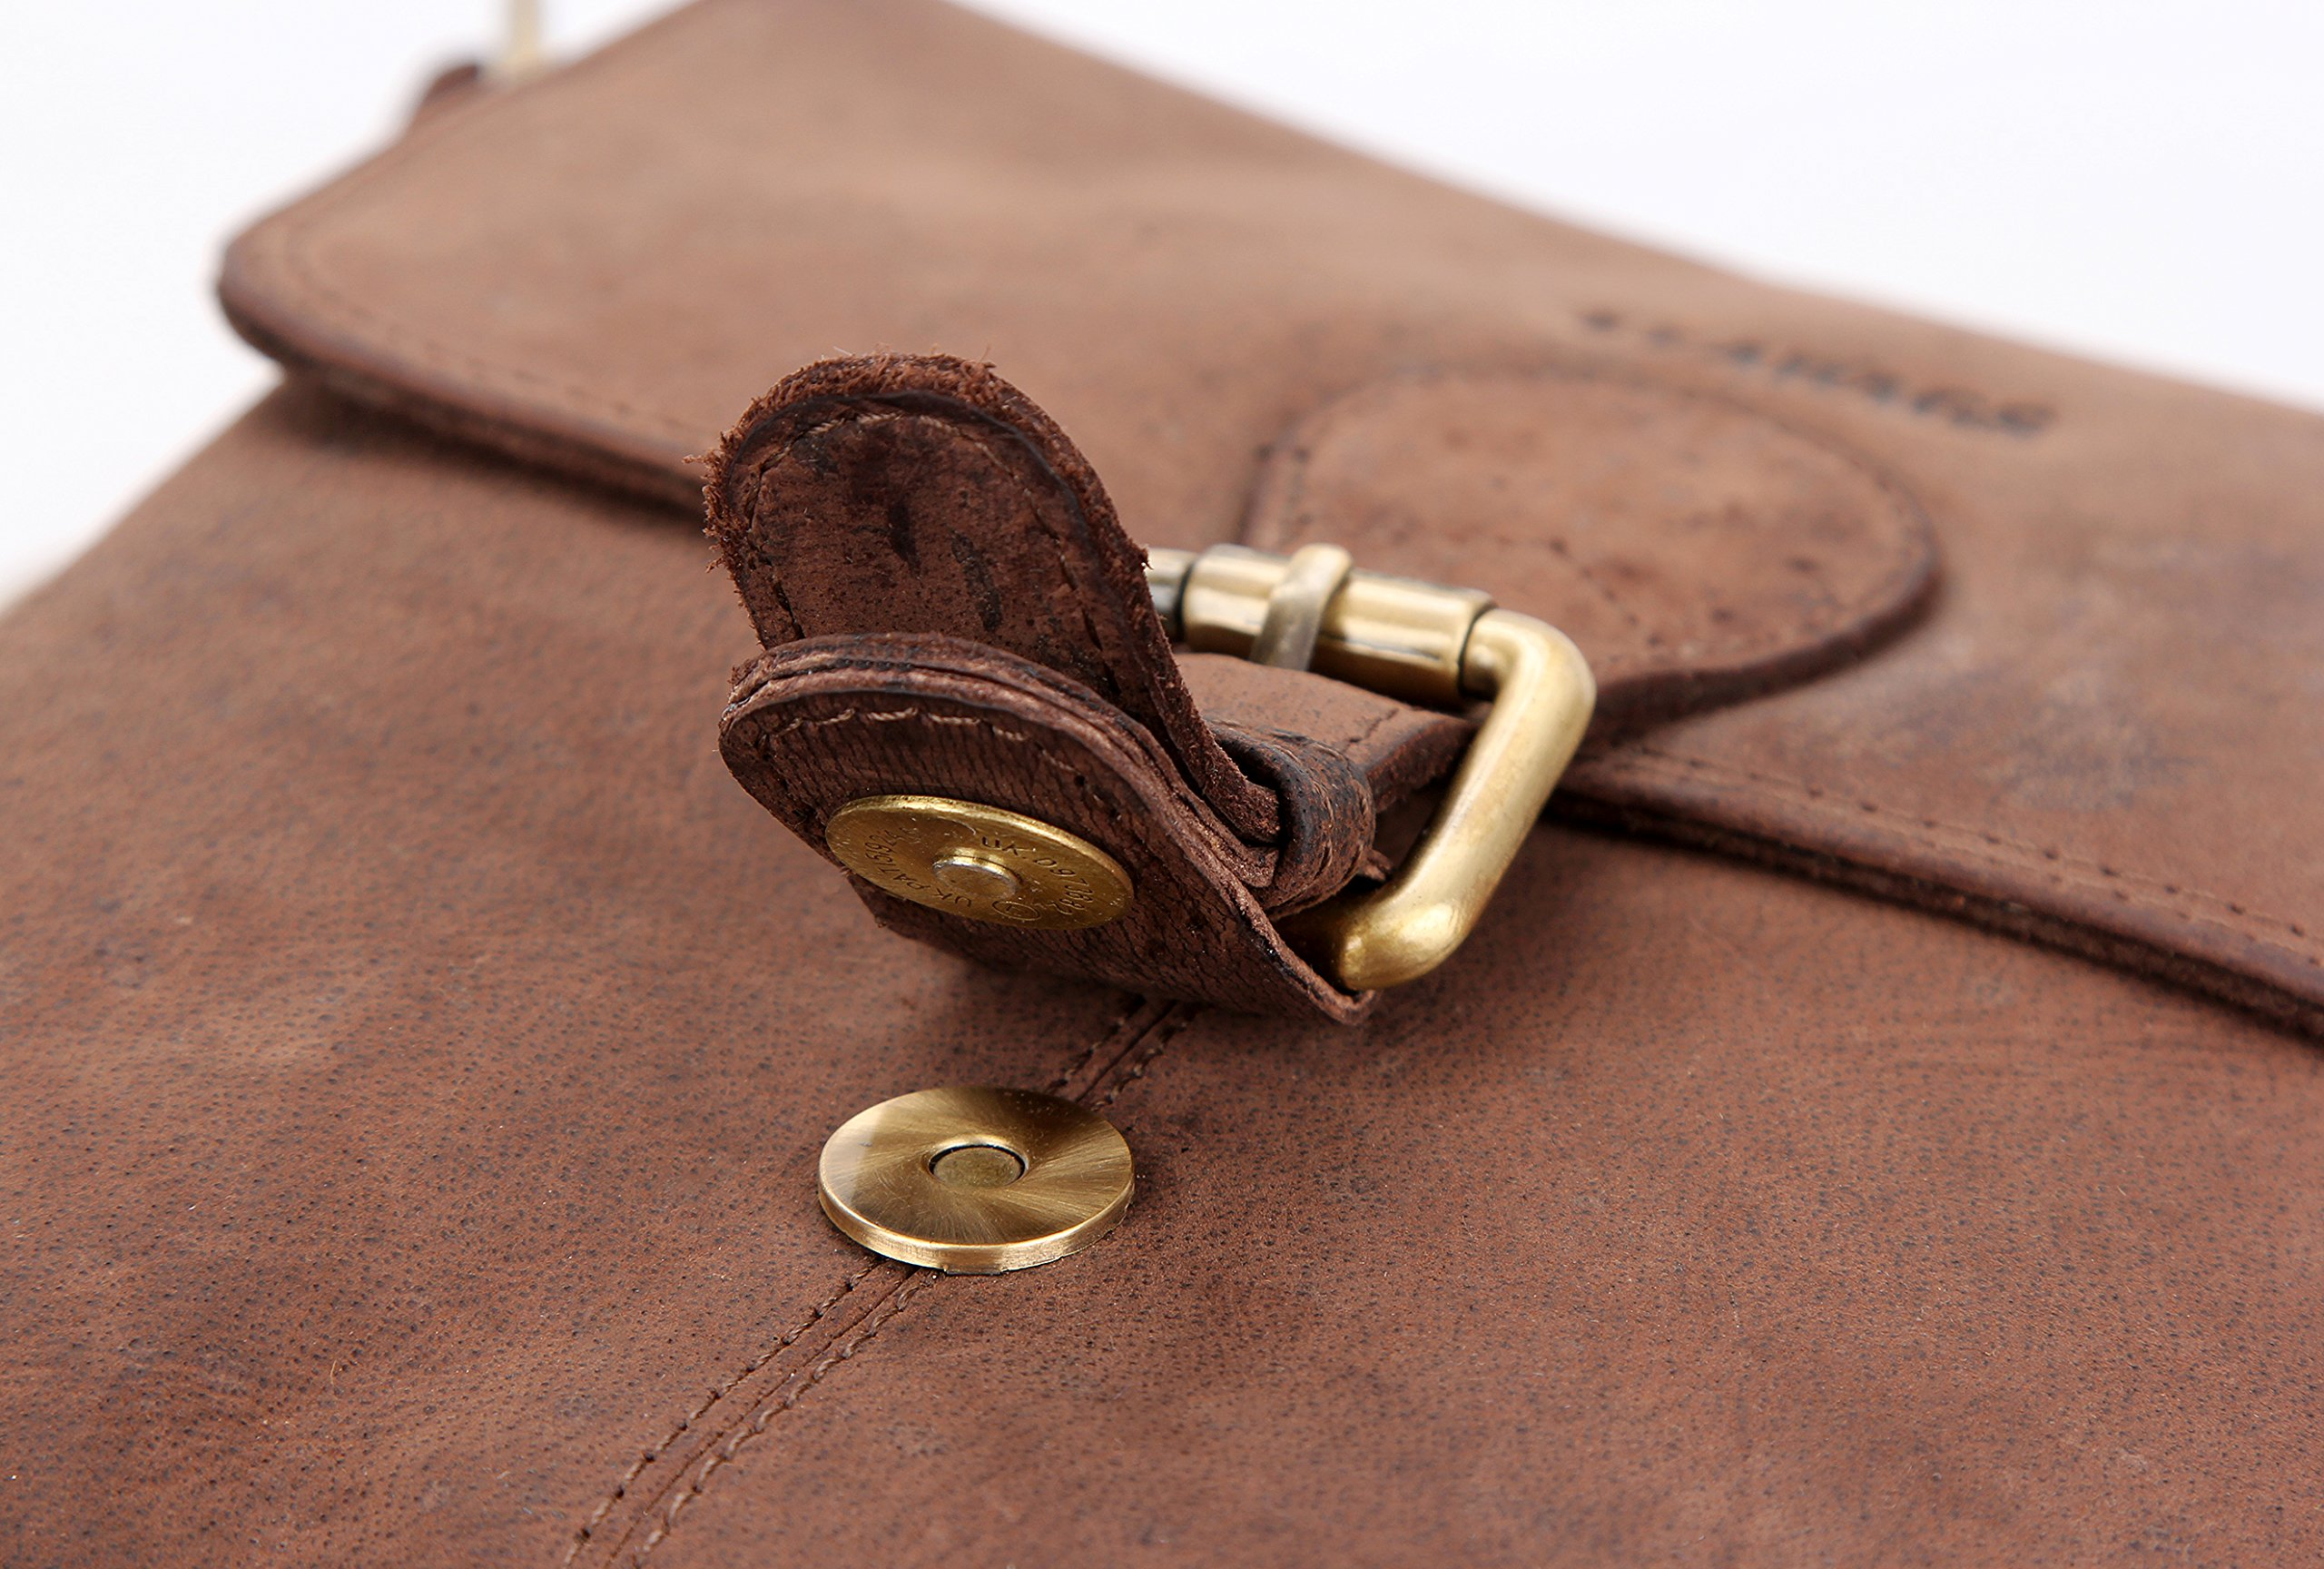 LEABAGS Weston genuine buffalo leather city bag in vintage style - Nutmeg by LEABAGS (Image #6)